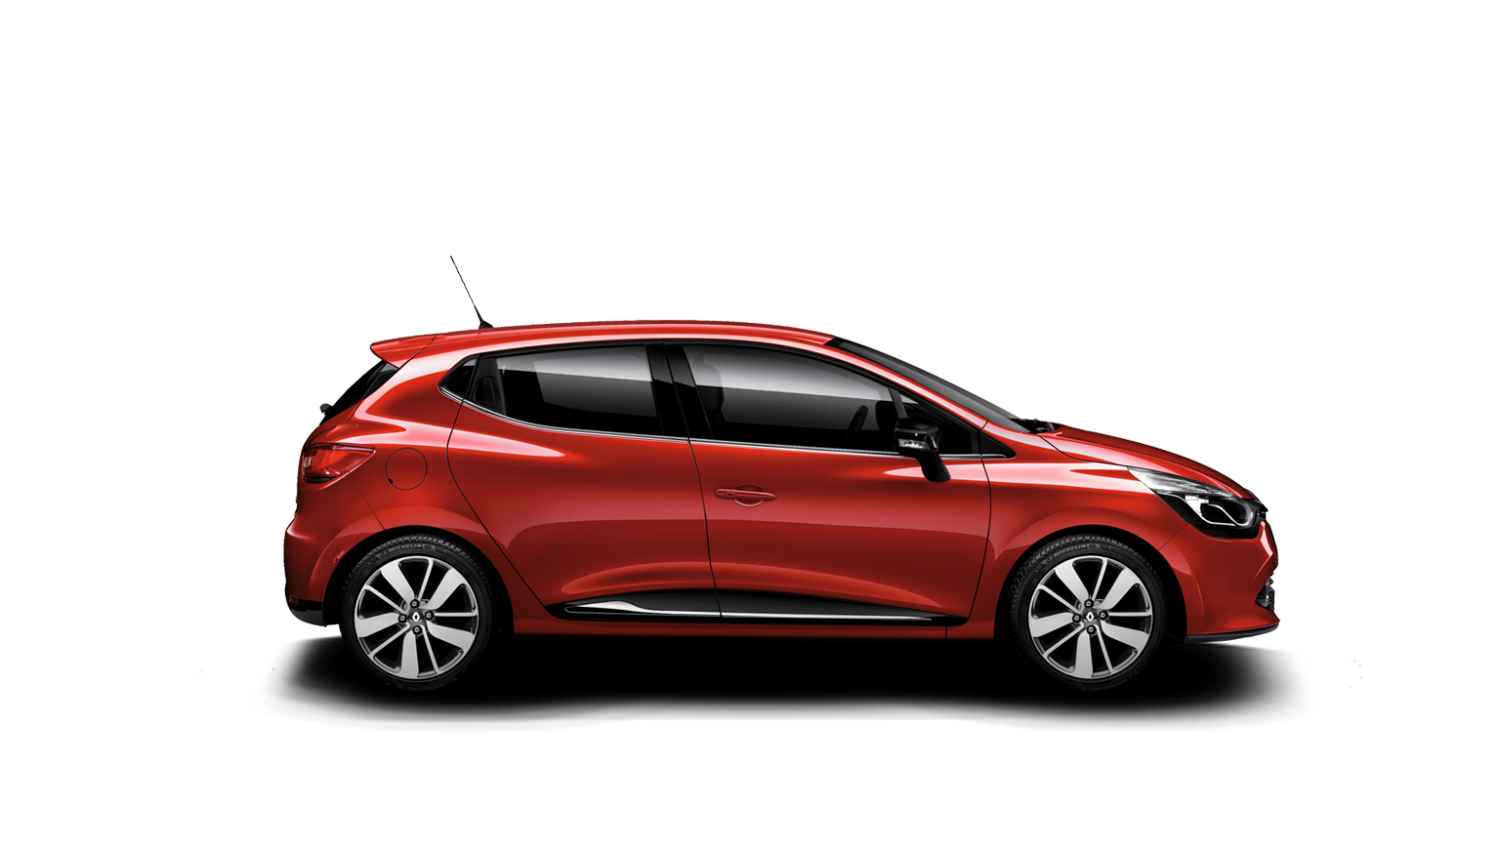 Renault Clio PNG